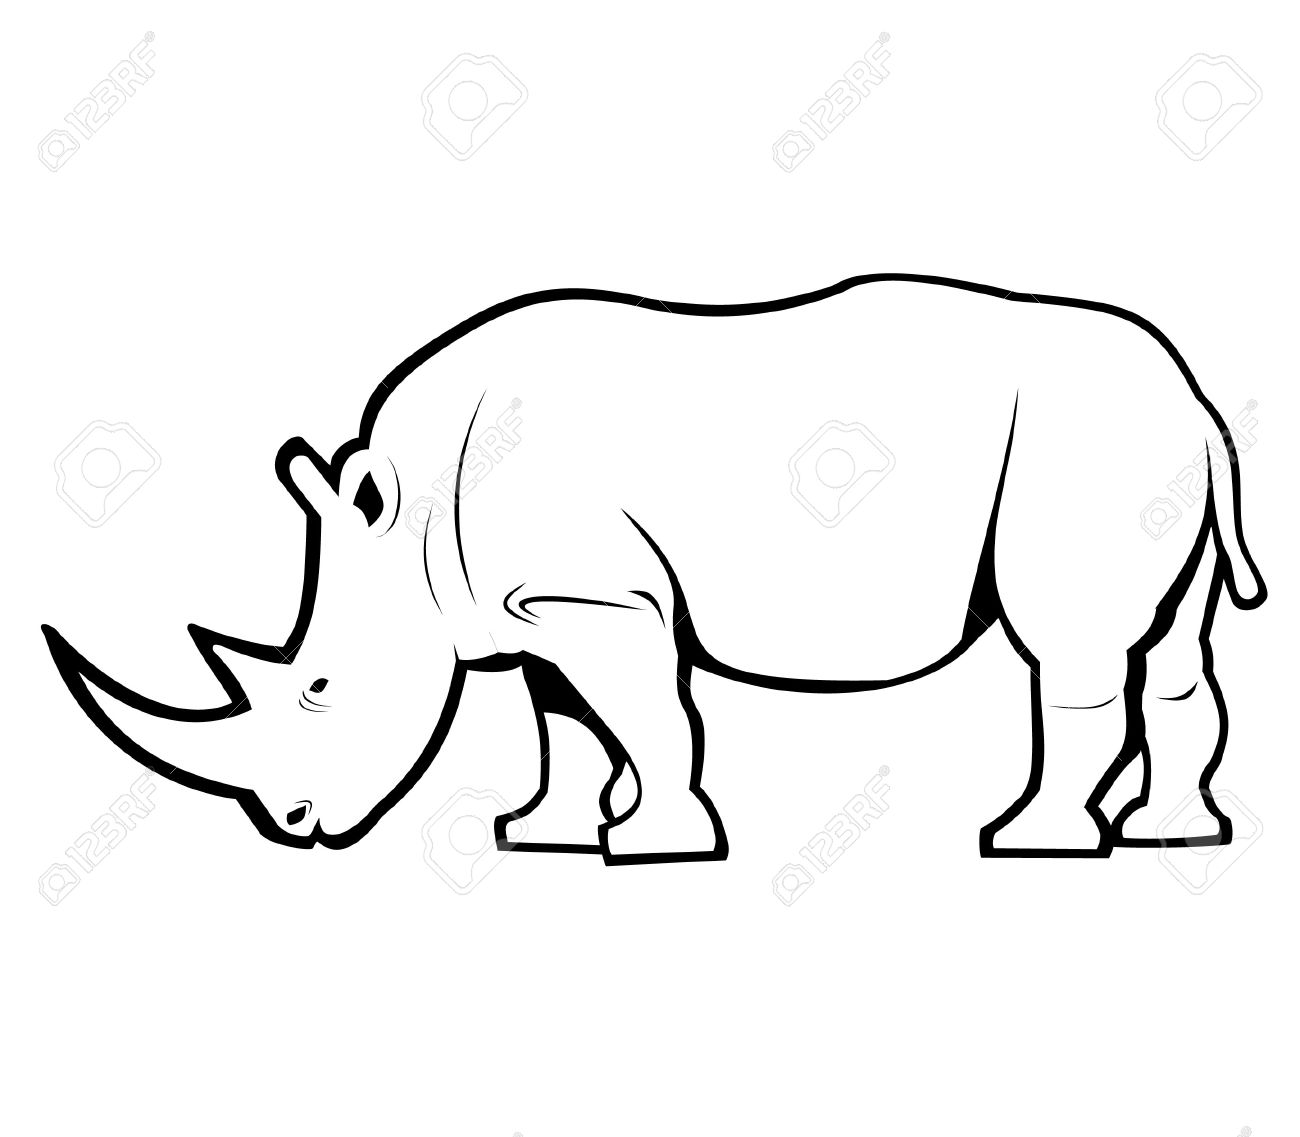 Rhino Outline Clipart